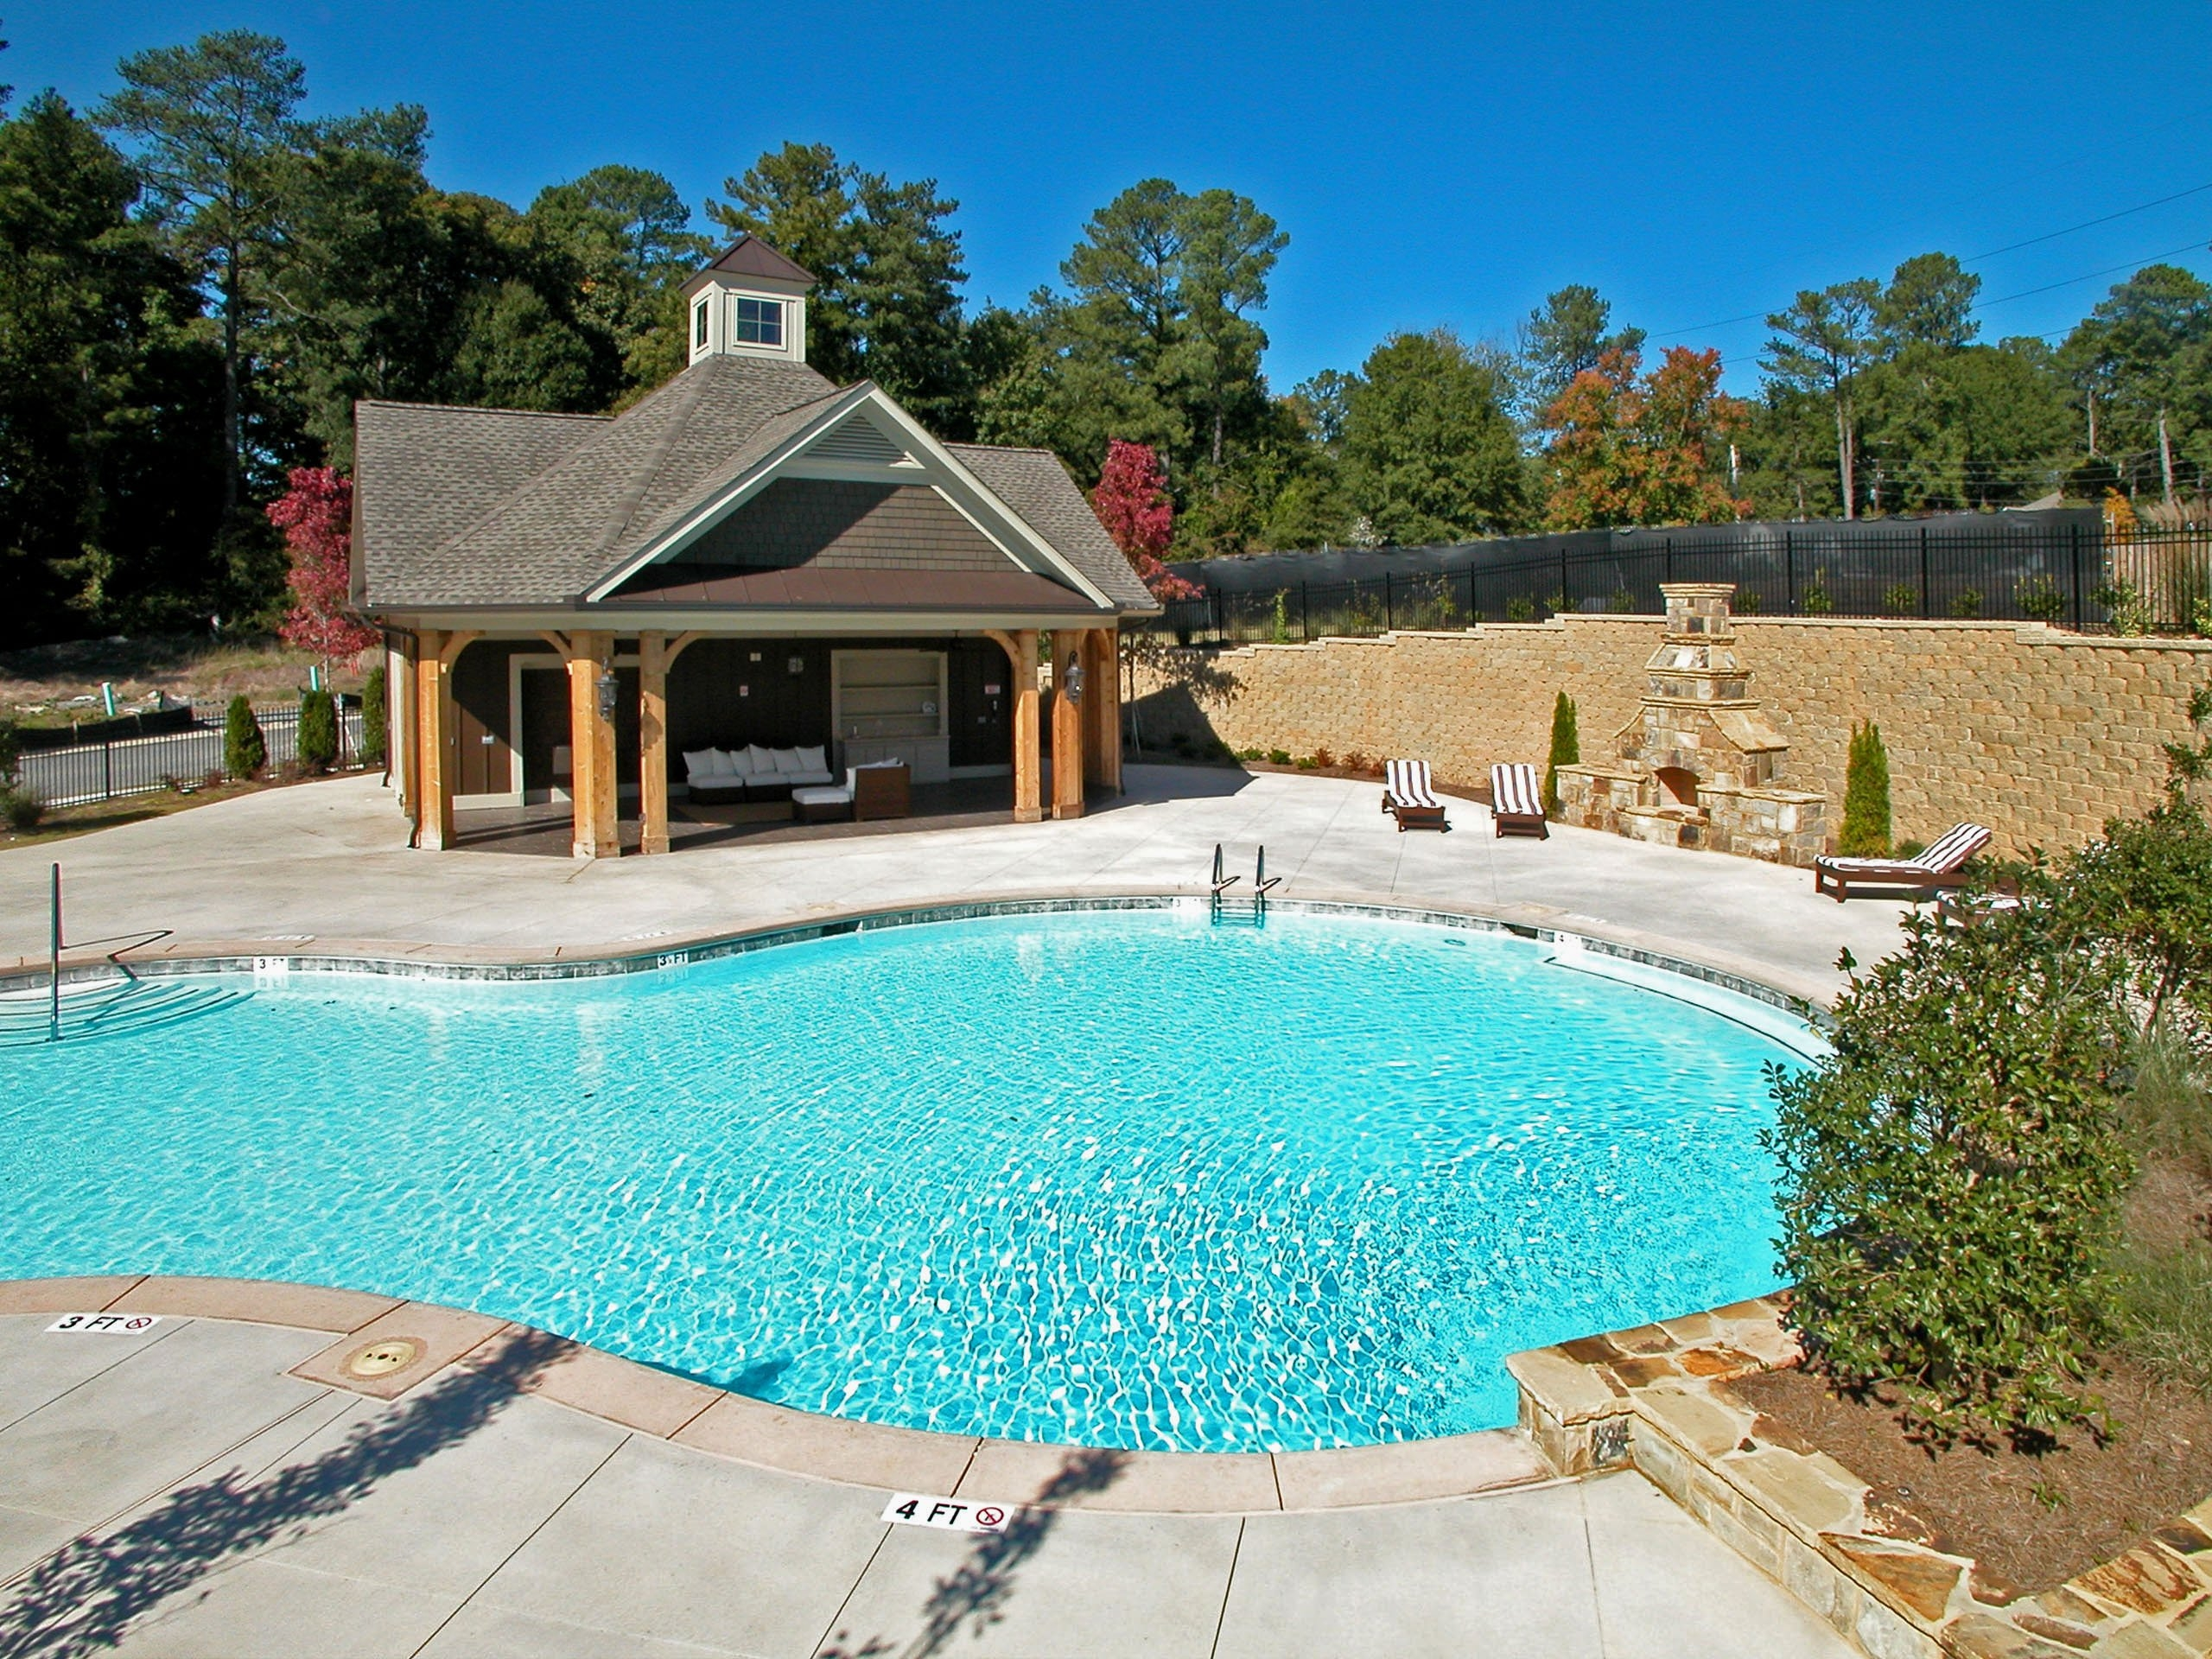 Atlanta townhomes 2 4 tamra wade partners of re max for Pool design drawings